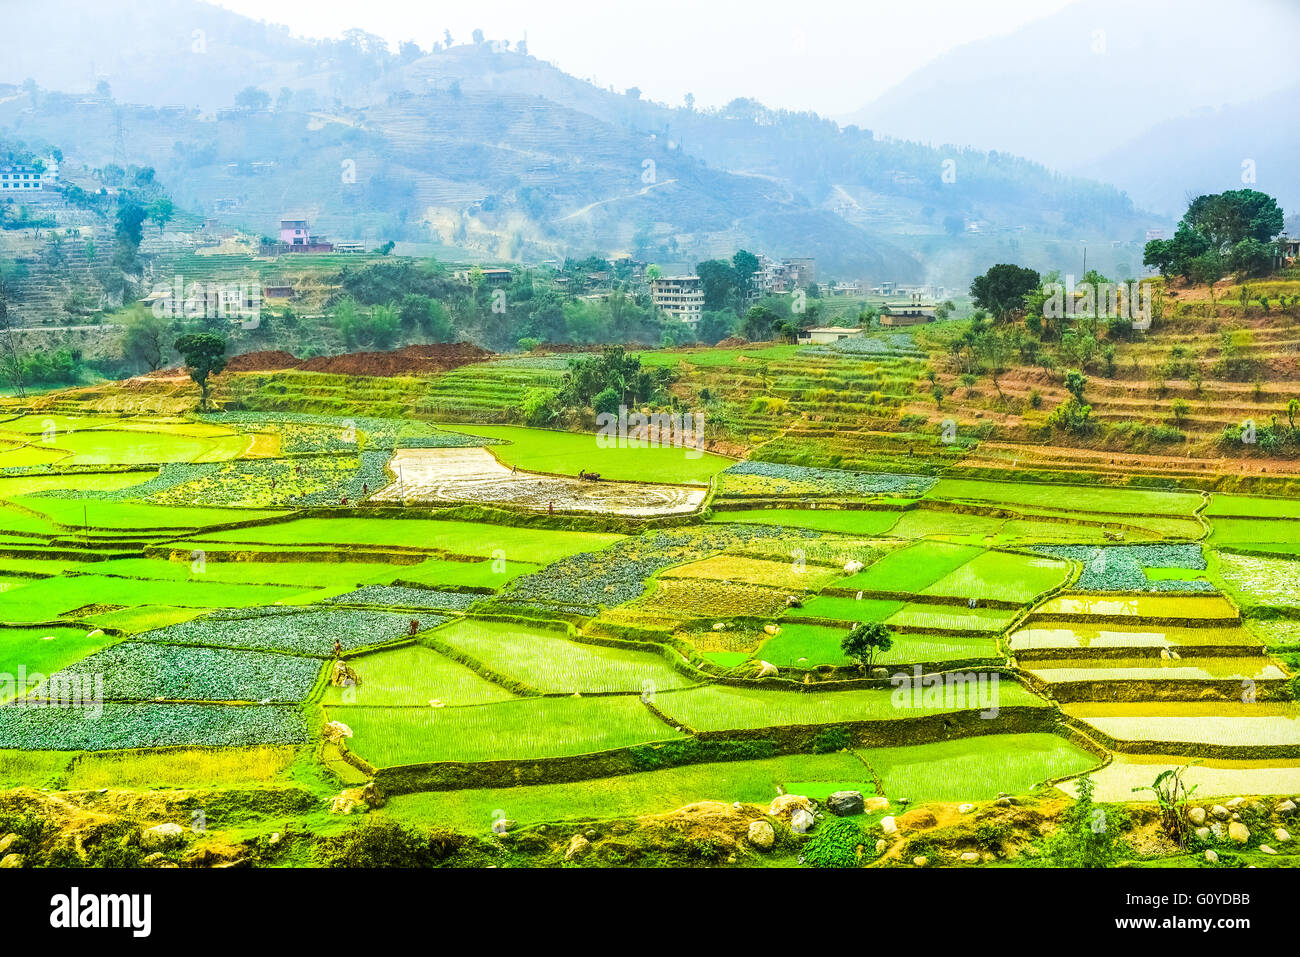 Agricultural terraces in Gorkha, Nepal. - Stock Image